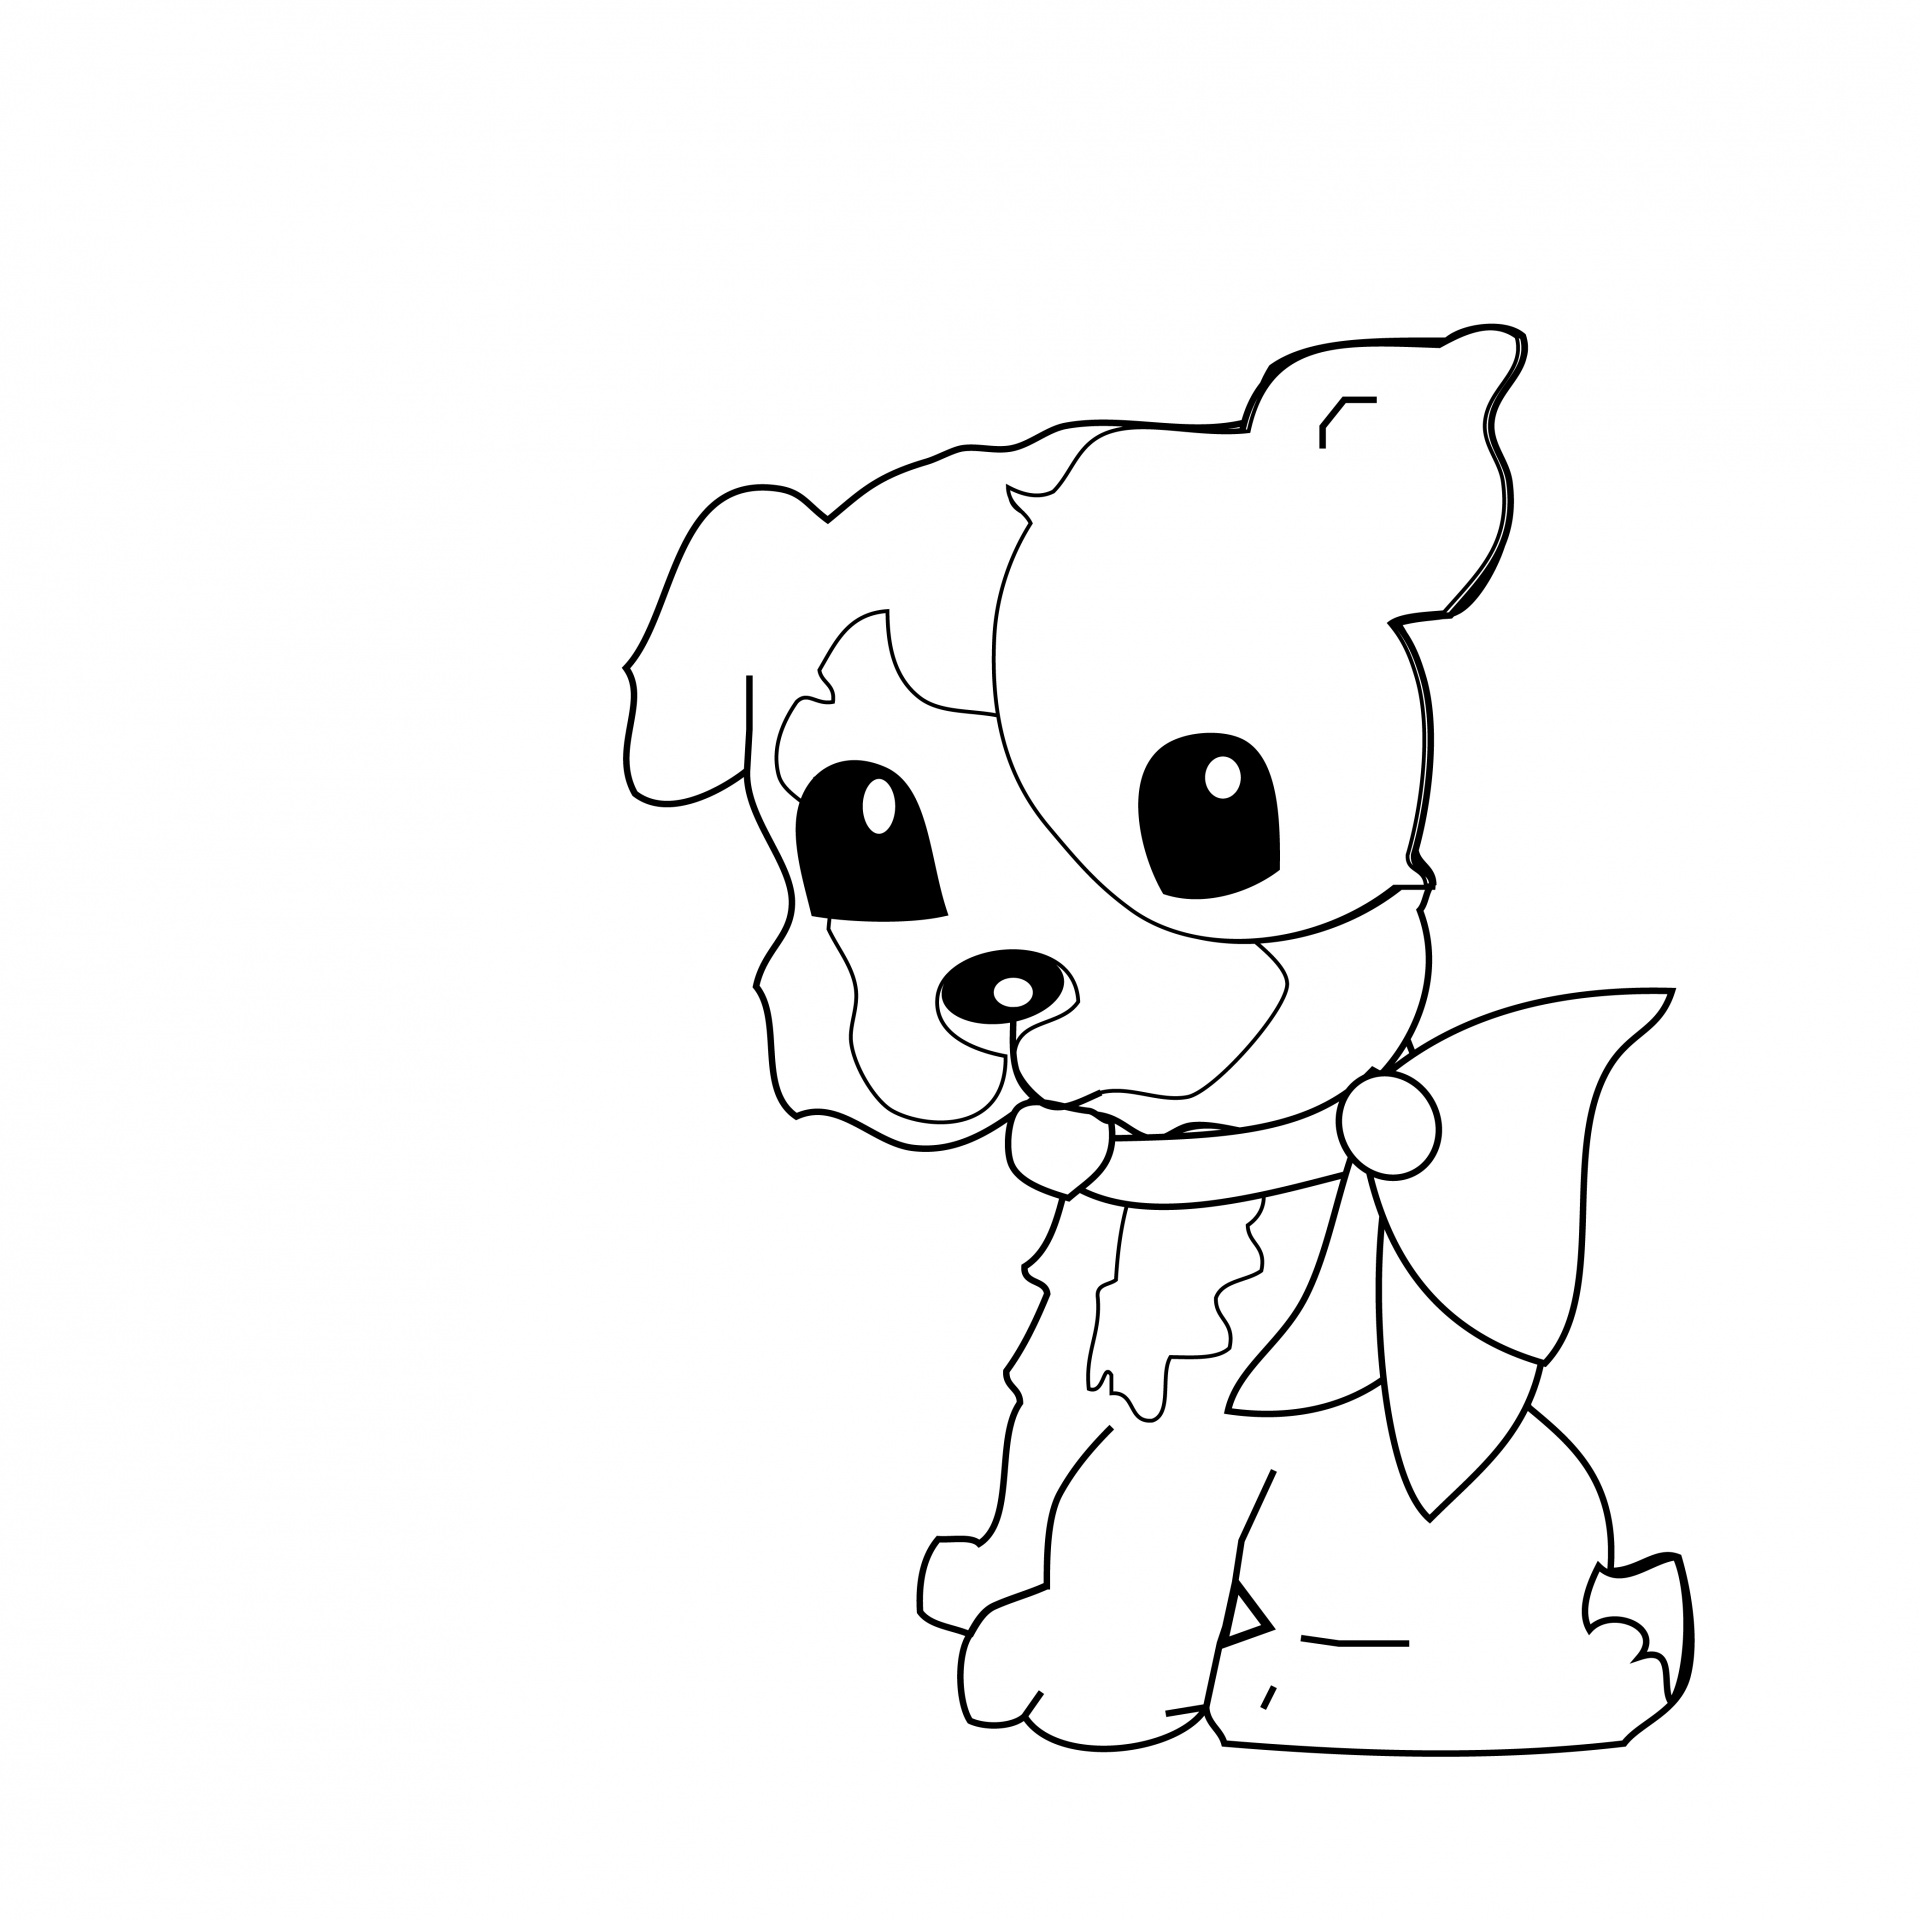 kids coloring puppy cute dog coloring pages to download and print for free kids puppy coloring